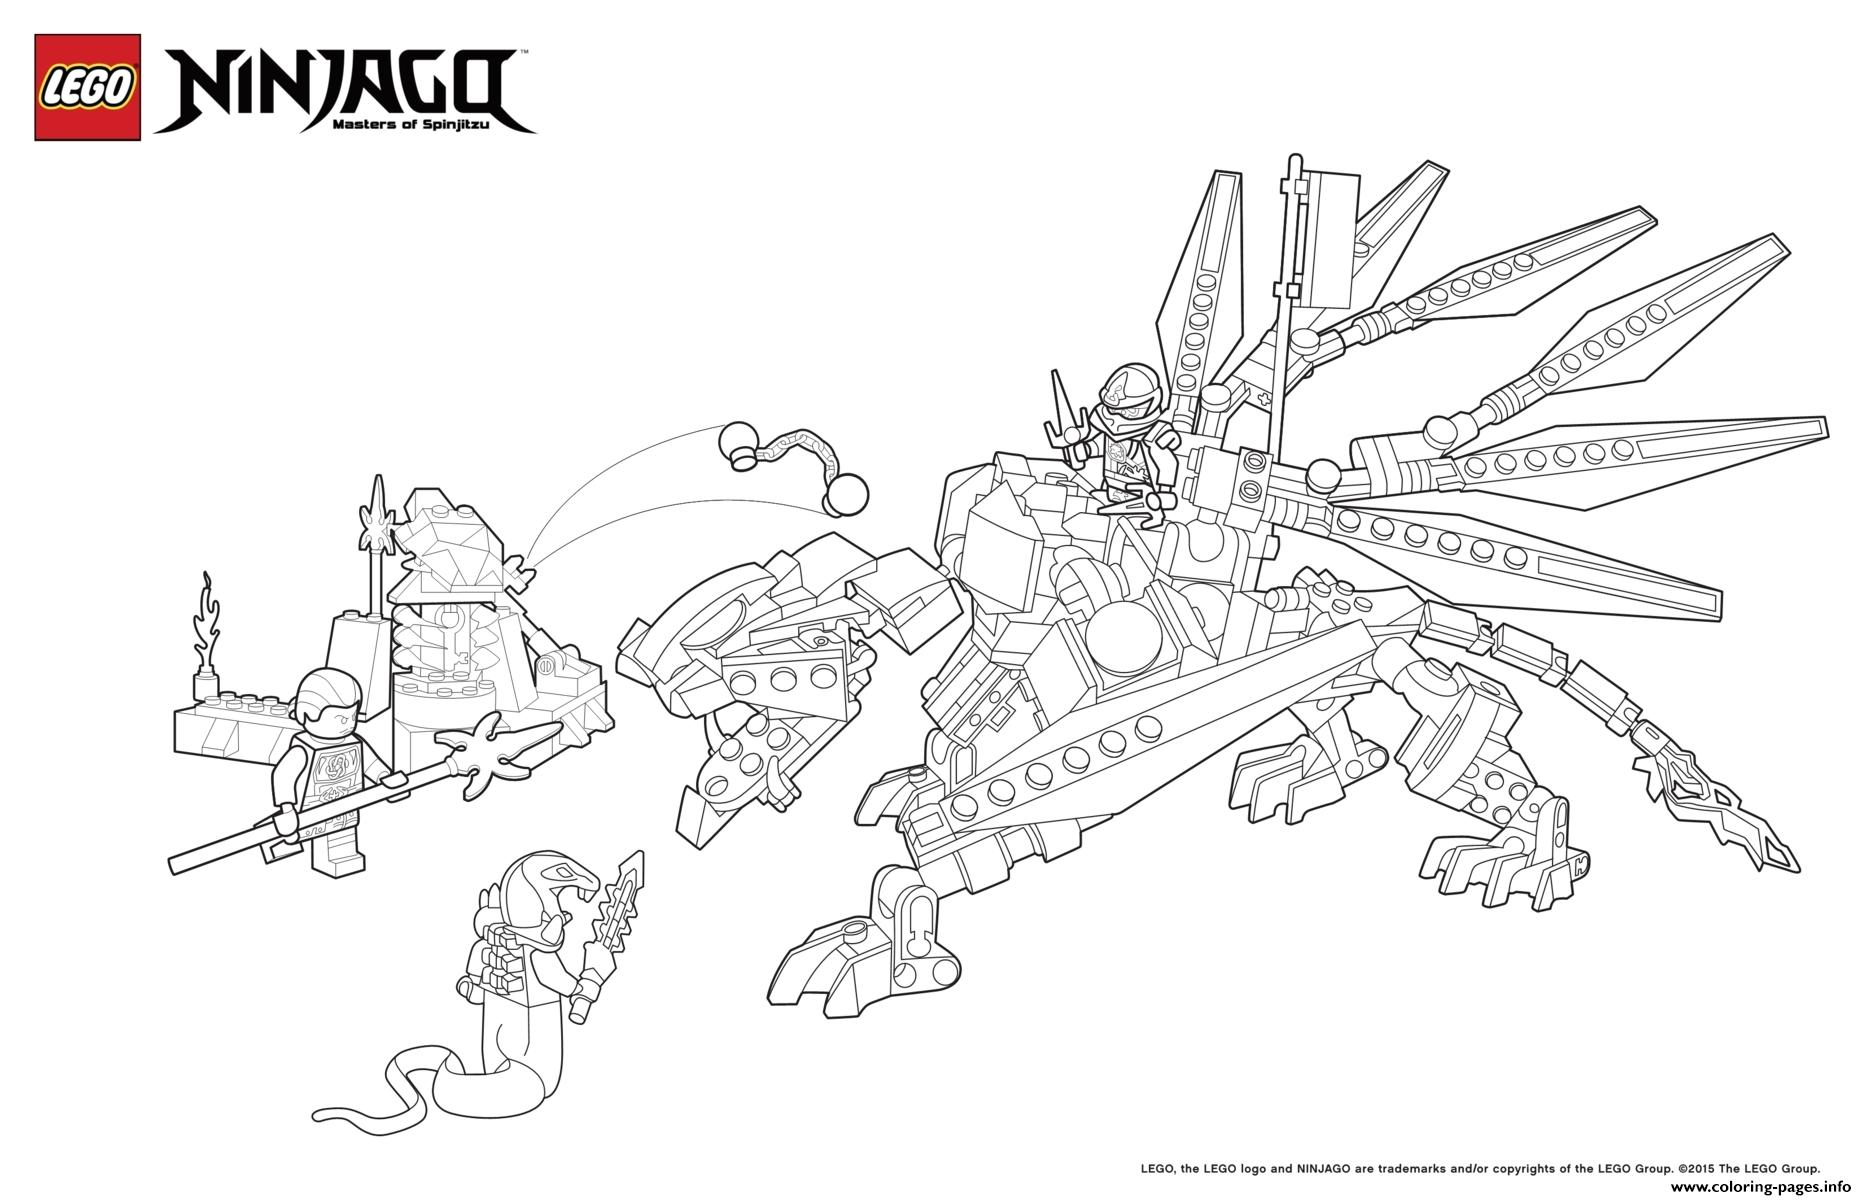 Dragon Ninja Attack Enemy Lego Coloring Pages Print Download